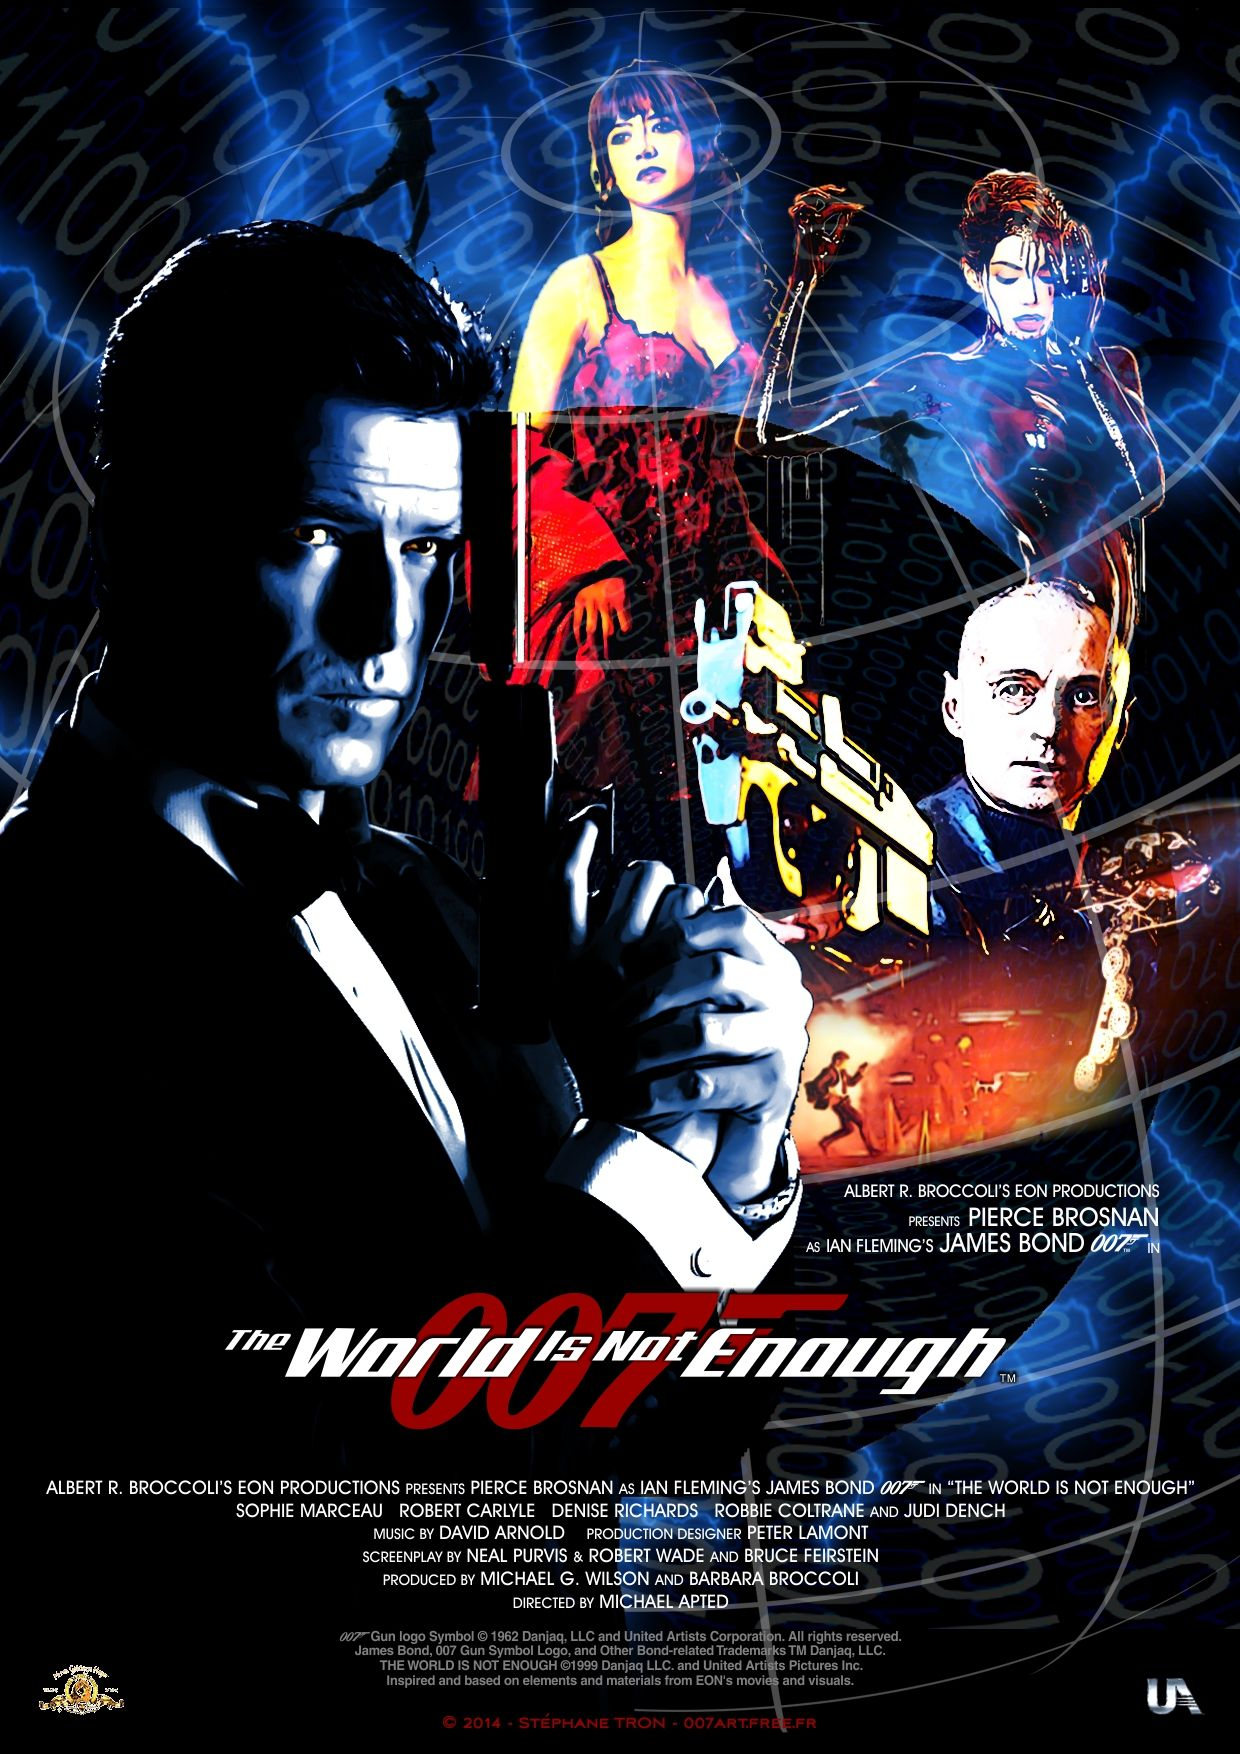 Pin By Mario Scott On 007 James Bond James Bond Movie Posters